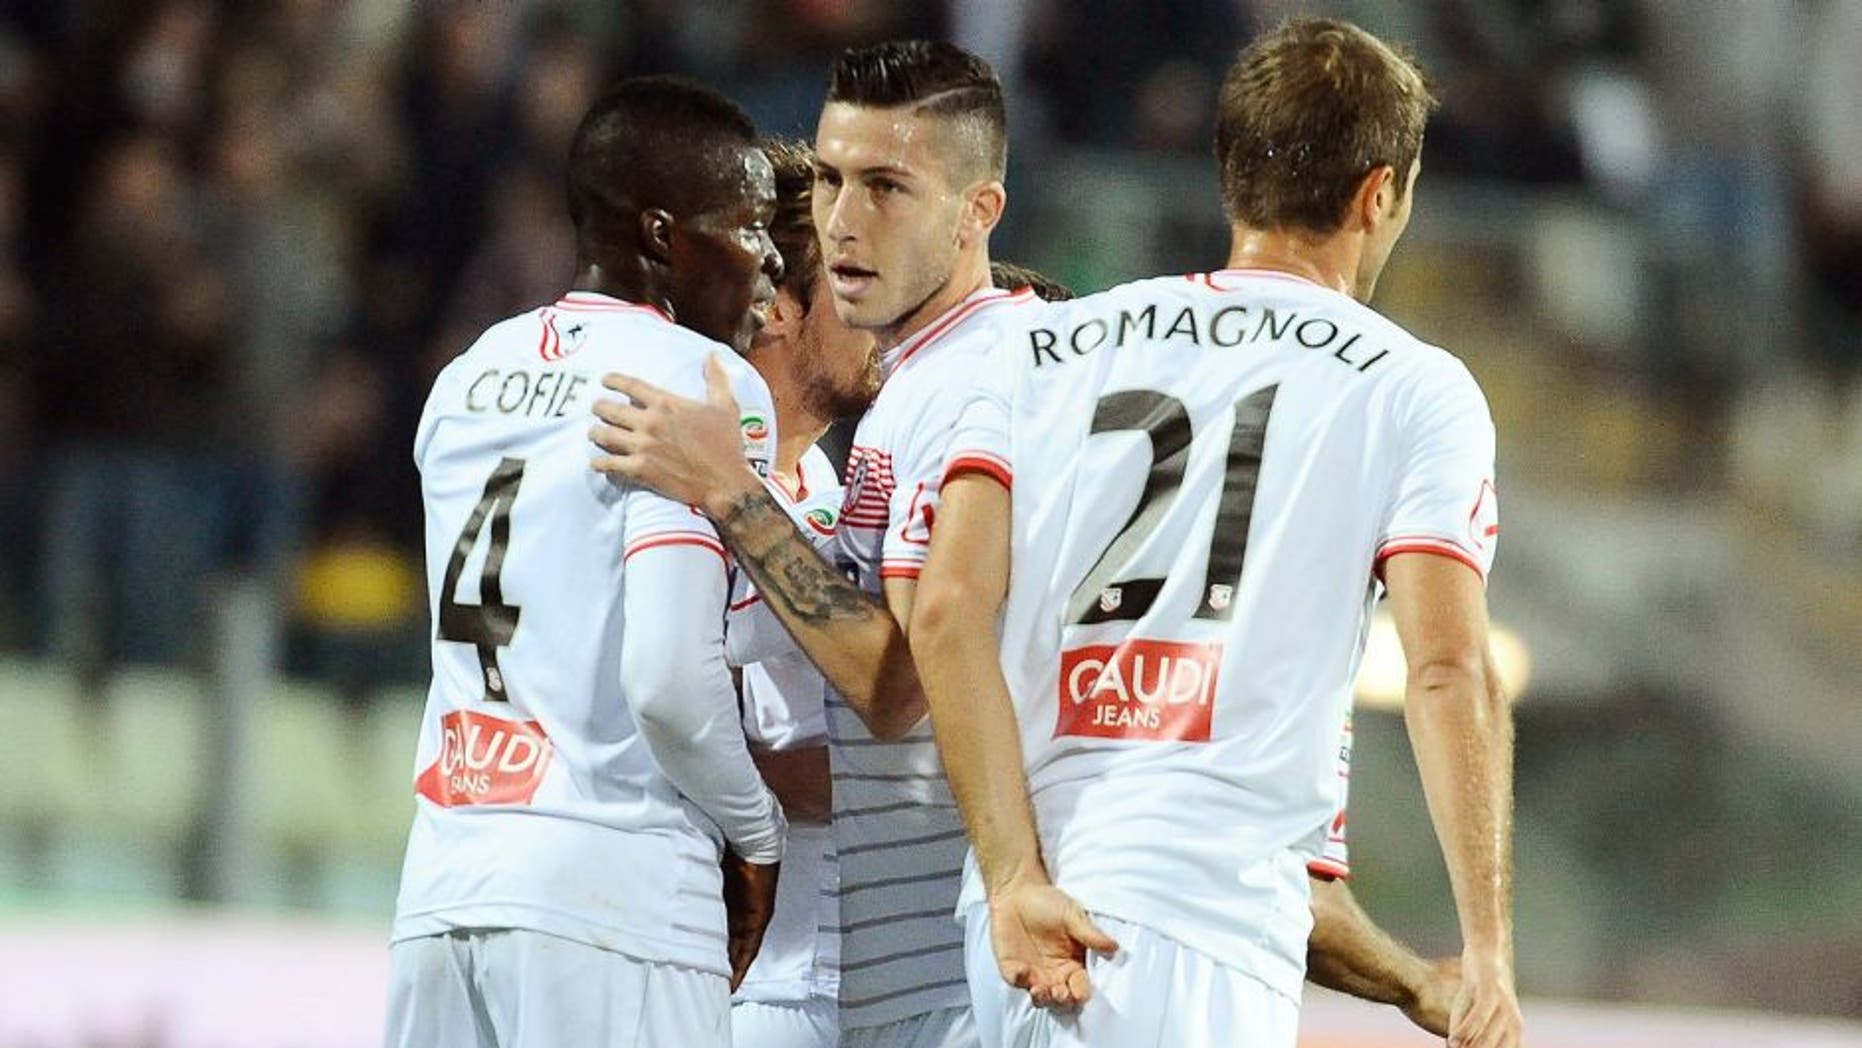 MODENA, ITALY - OCTOBER 24: Gaetano Letizia # 3 of Carpi FC celebrates after scoring the opening goal during the Serie A match between Carpi FC and Bologna FC at Alberto Braglia Stadium on October 24, 2015 in Modena, Italy. (Photo by Mario Carlini / Iguana Press/Getty Images)